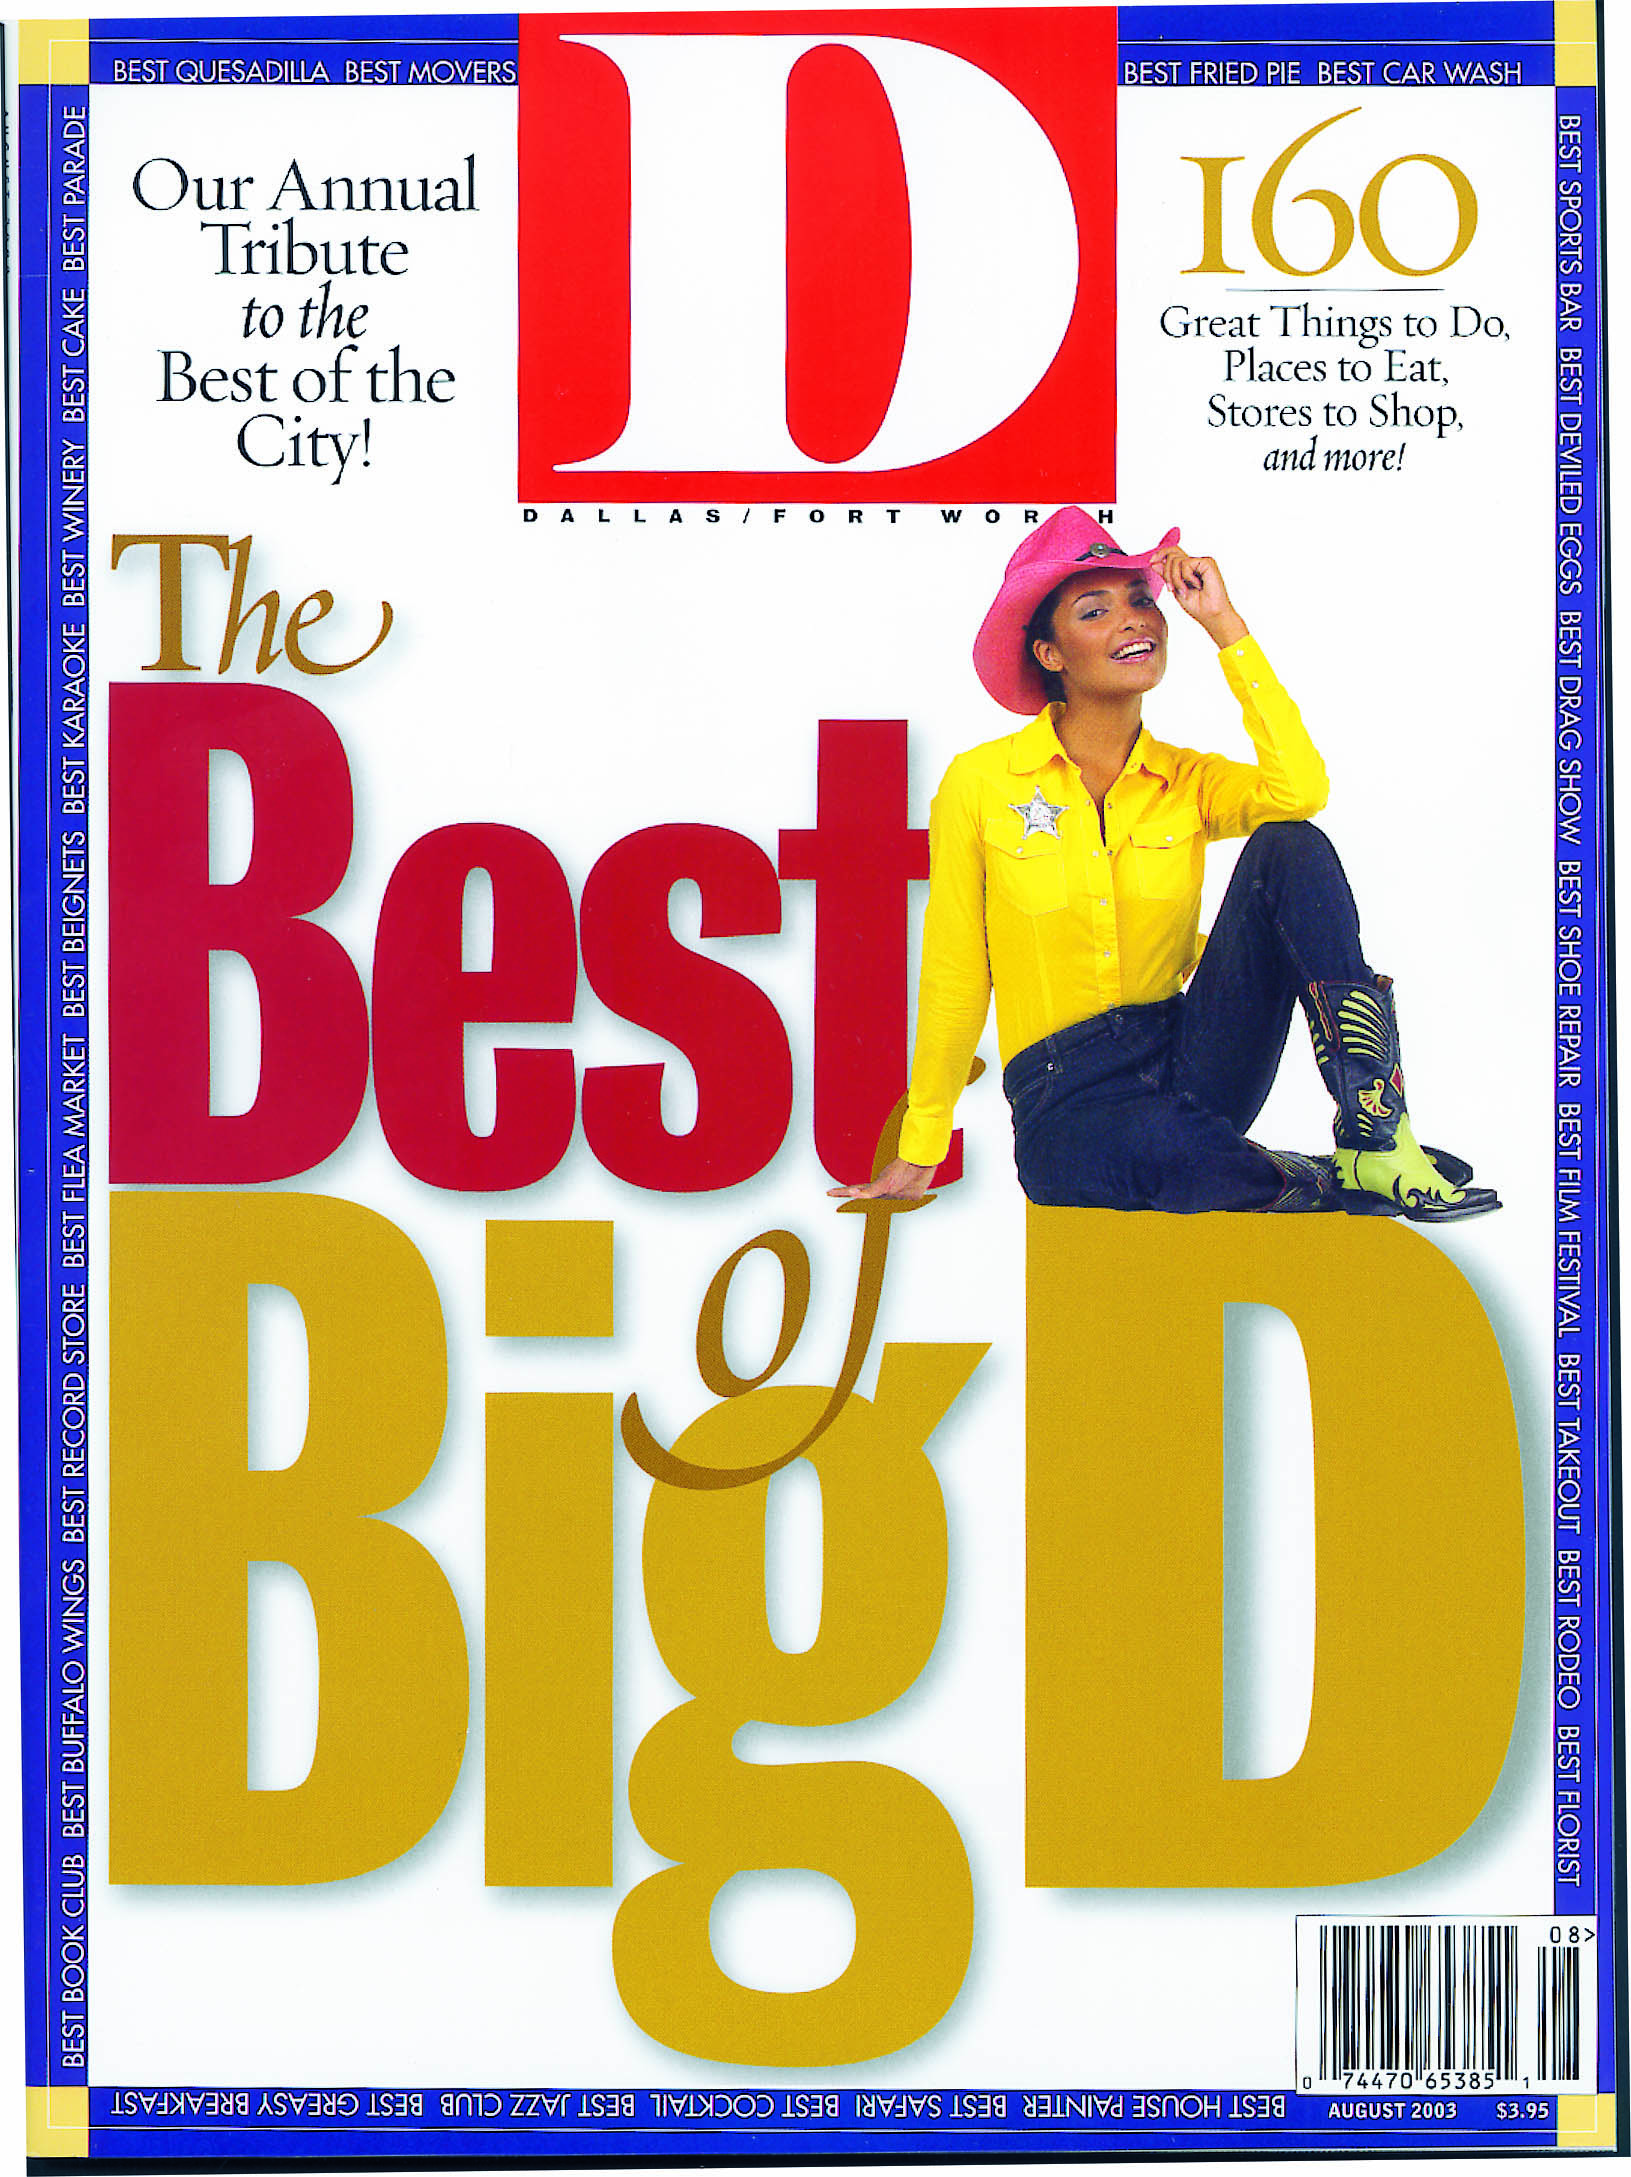 August 2003 cover